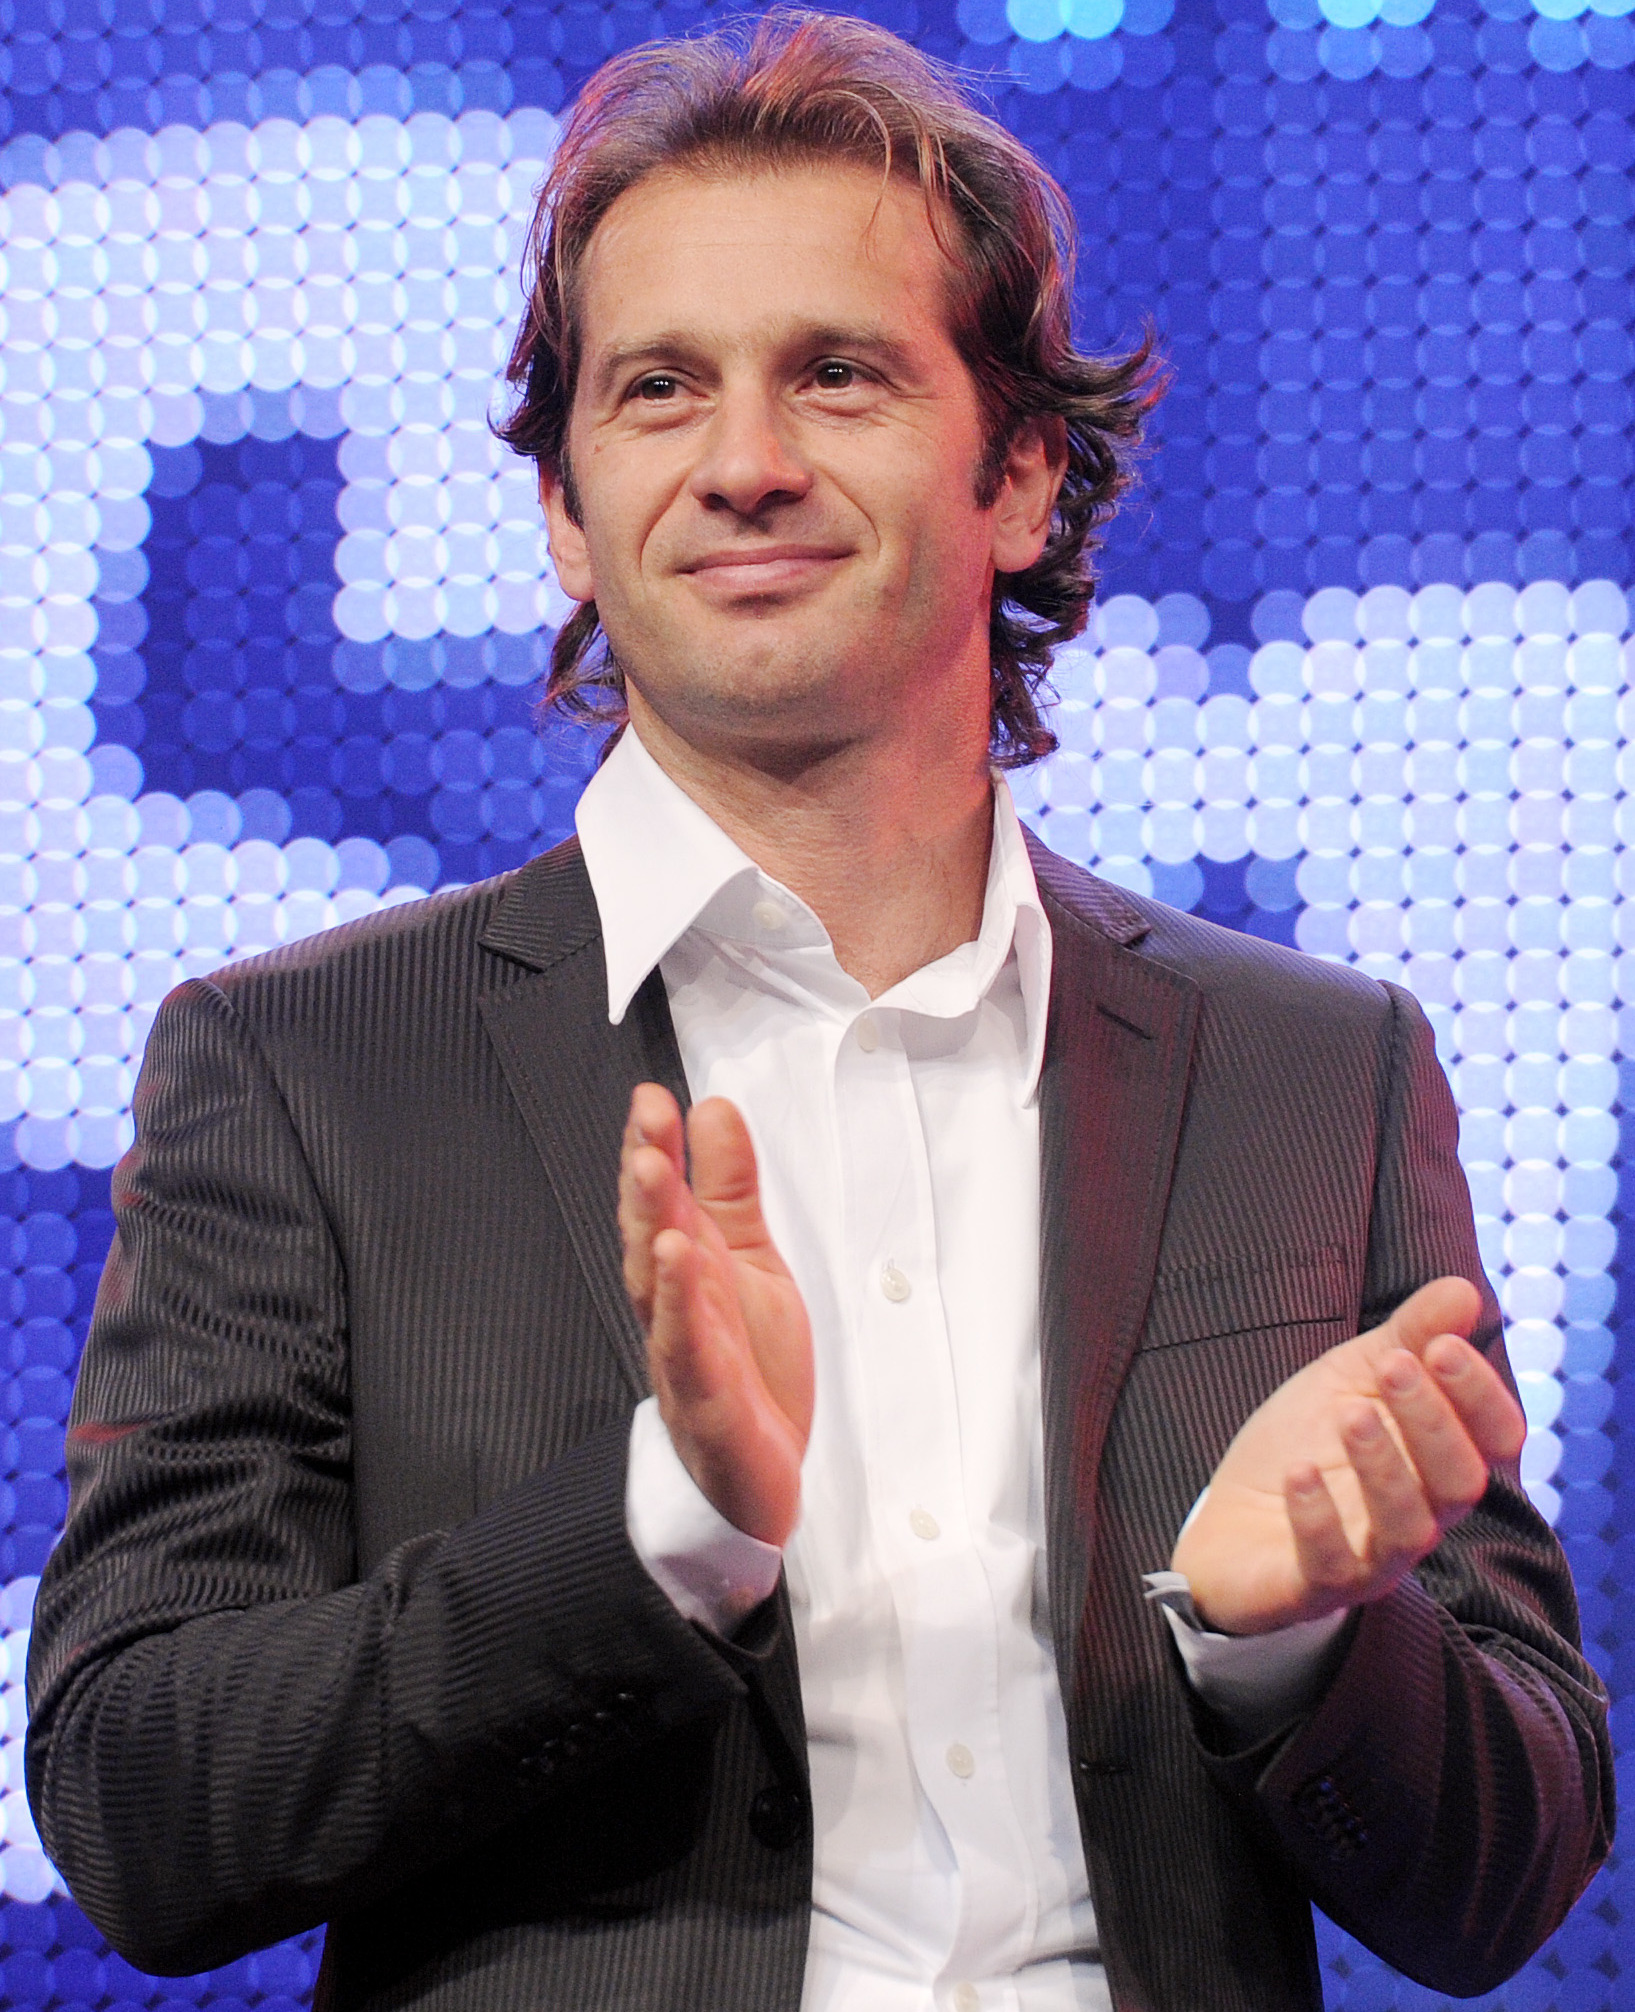 The 44-year old son of father Enzo Trulli and mother Kate Trulli Jarno Trulli in 2018 photo. Jarno Trulli earned a  million dollar salary - leaving the net worth at 12 million in 2018